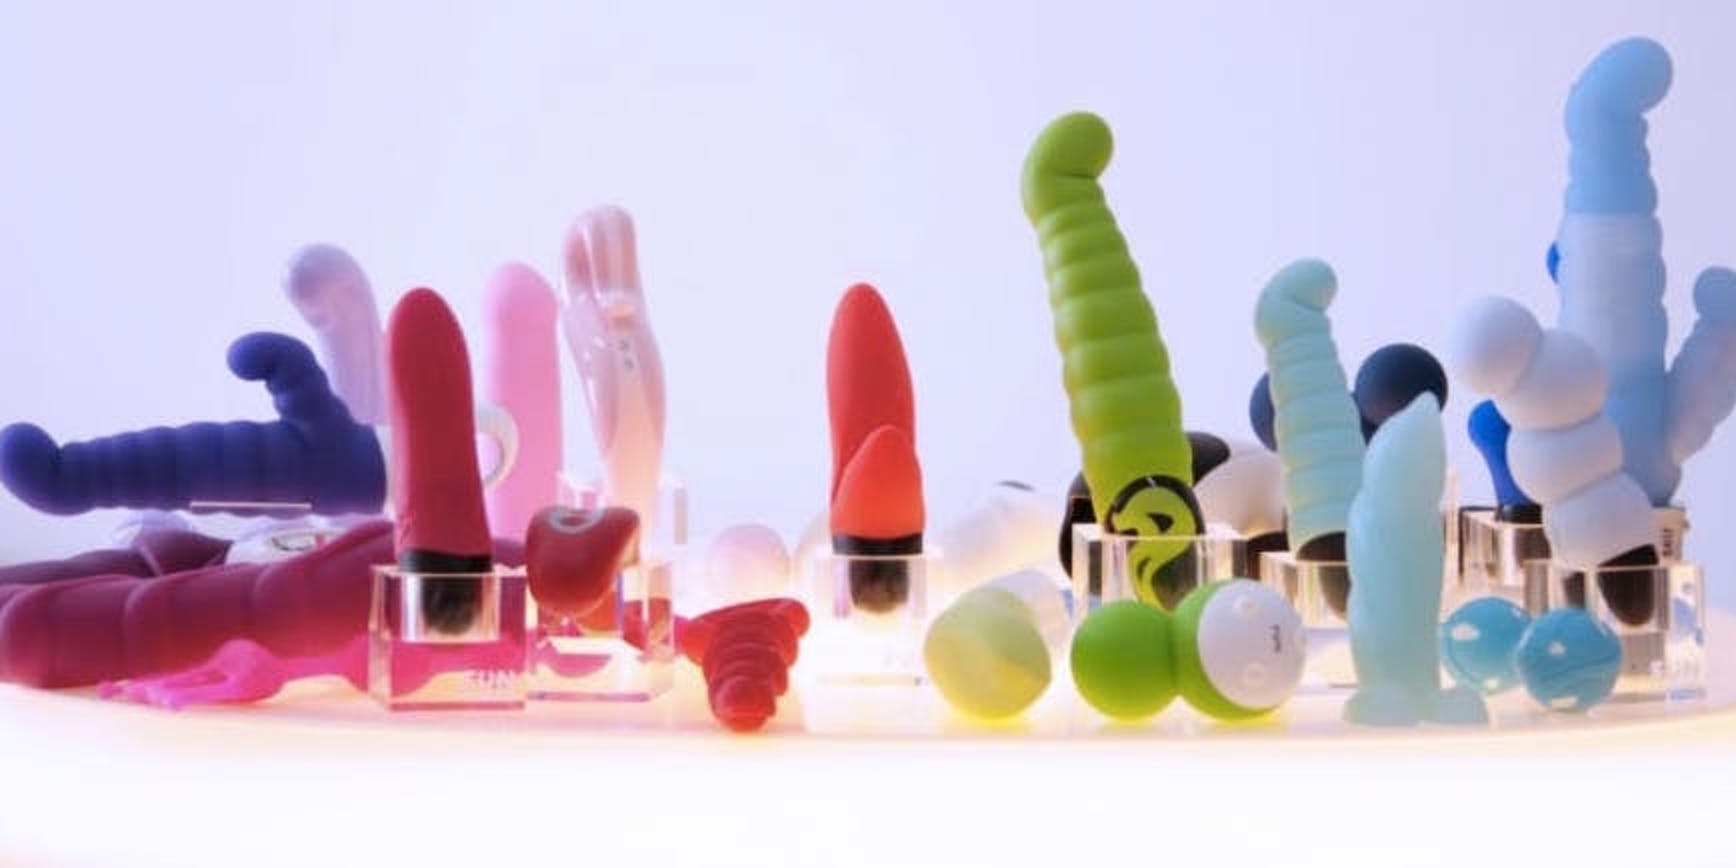 sex toy industry united states